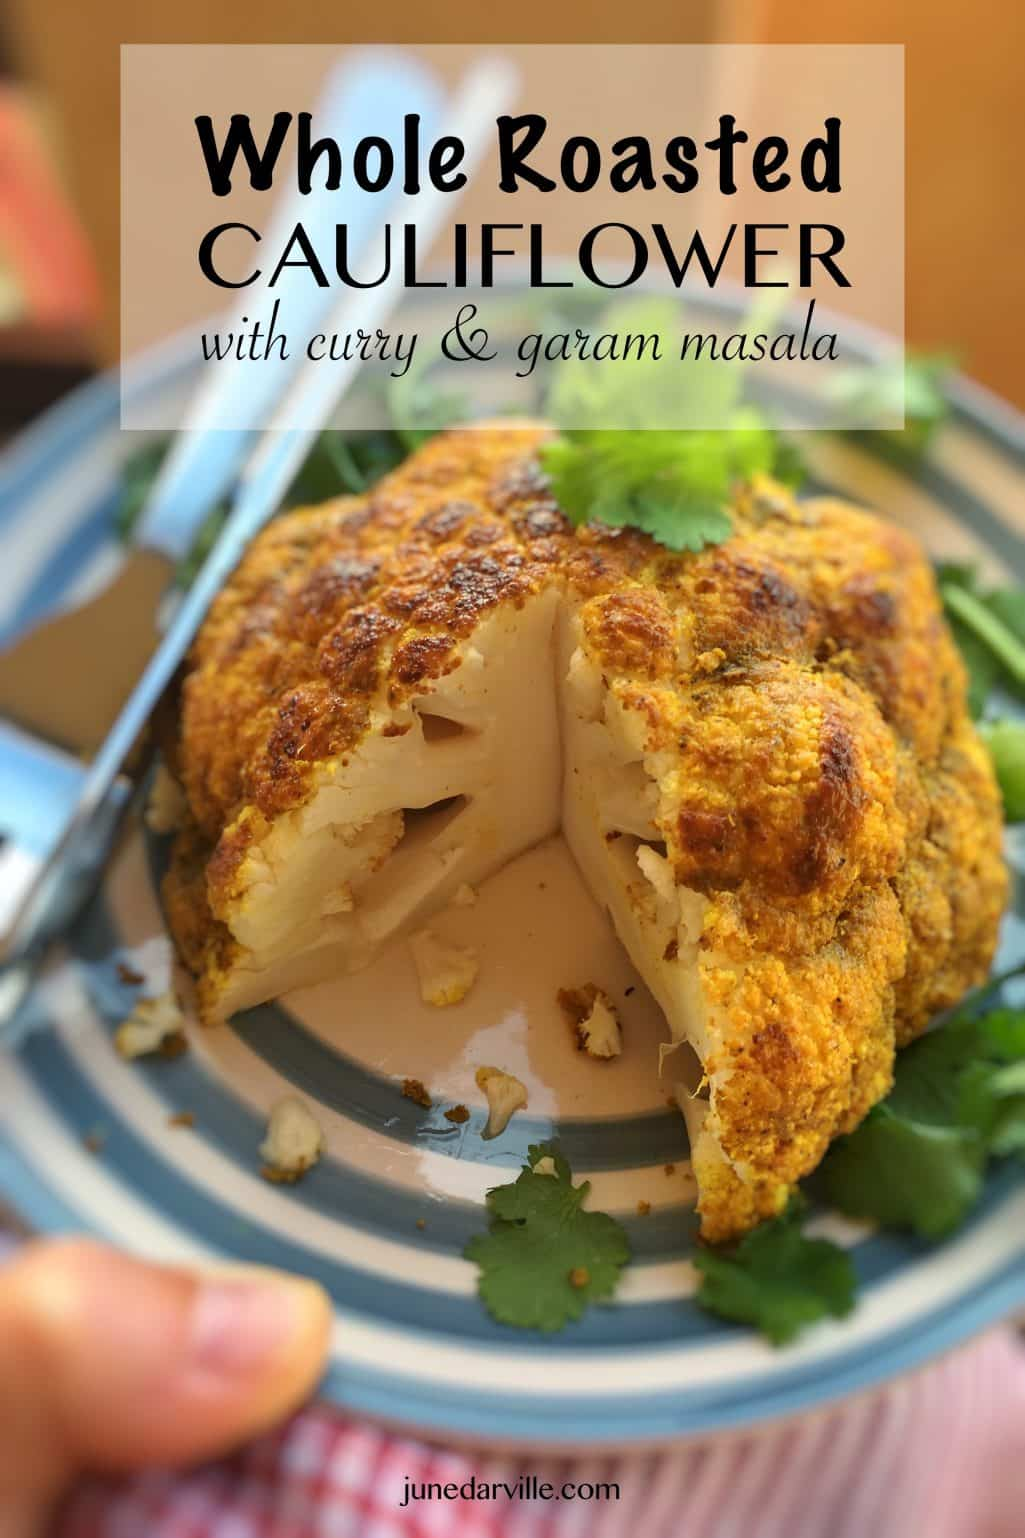 Whole Roasted Cauliflower with Curry